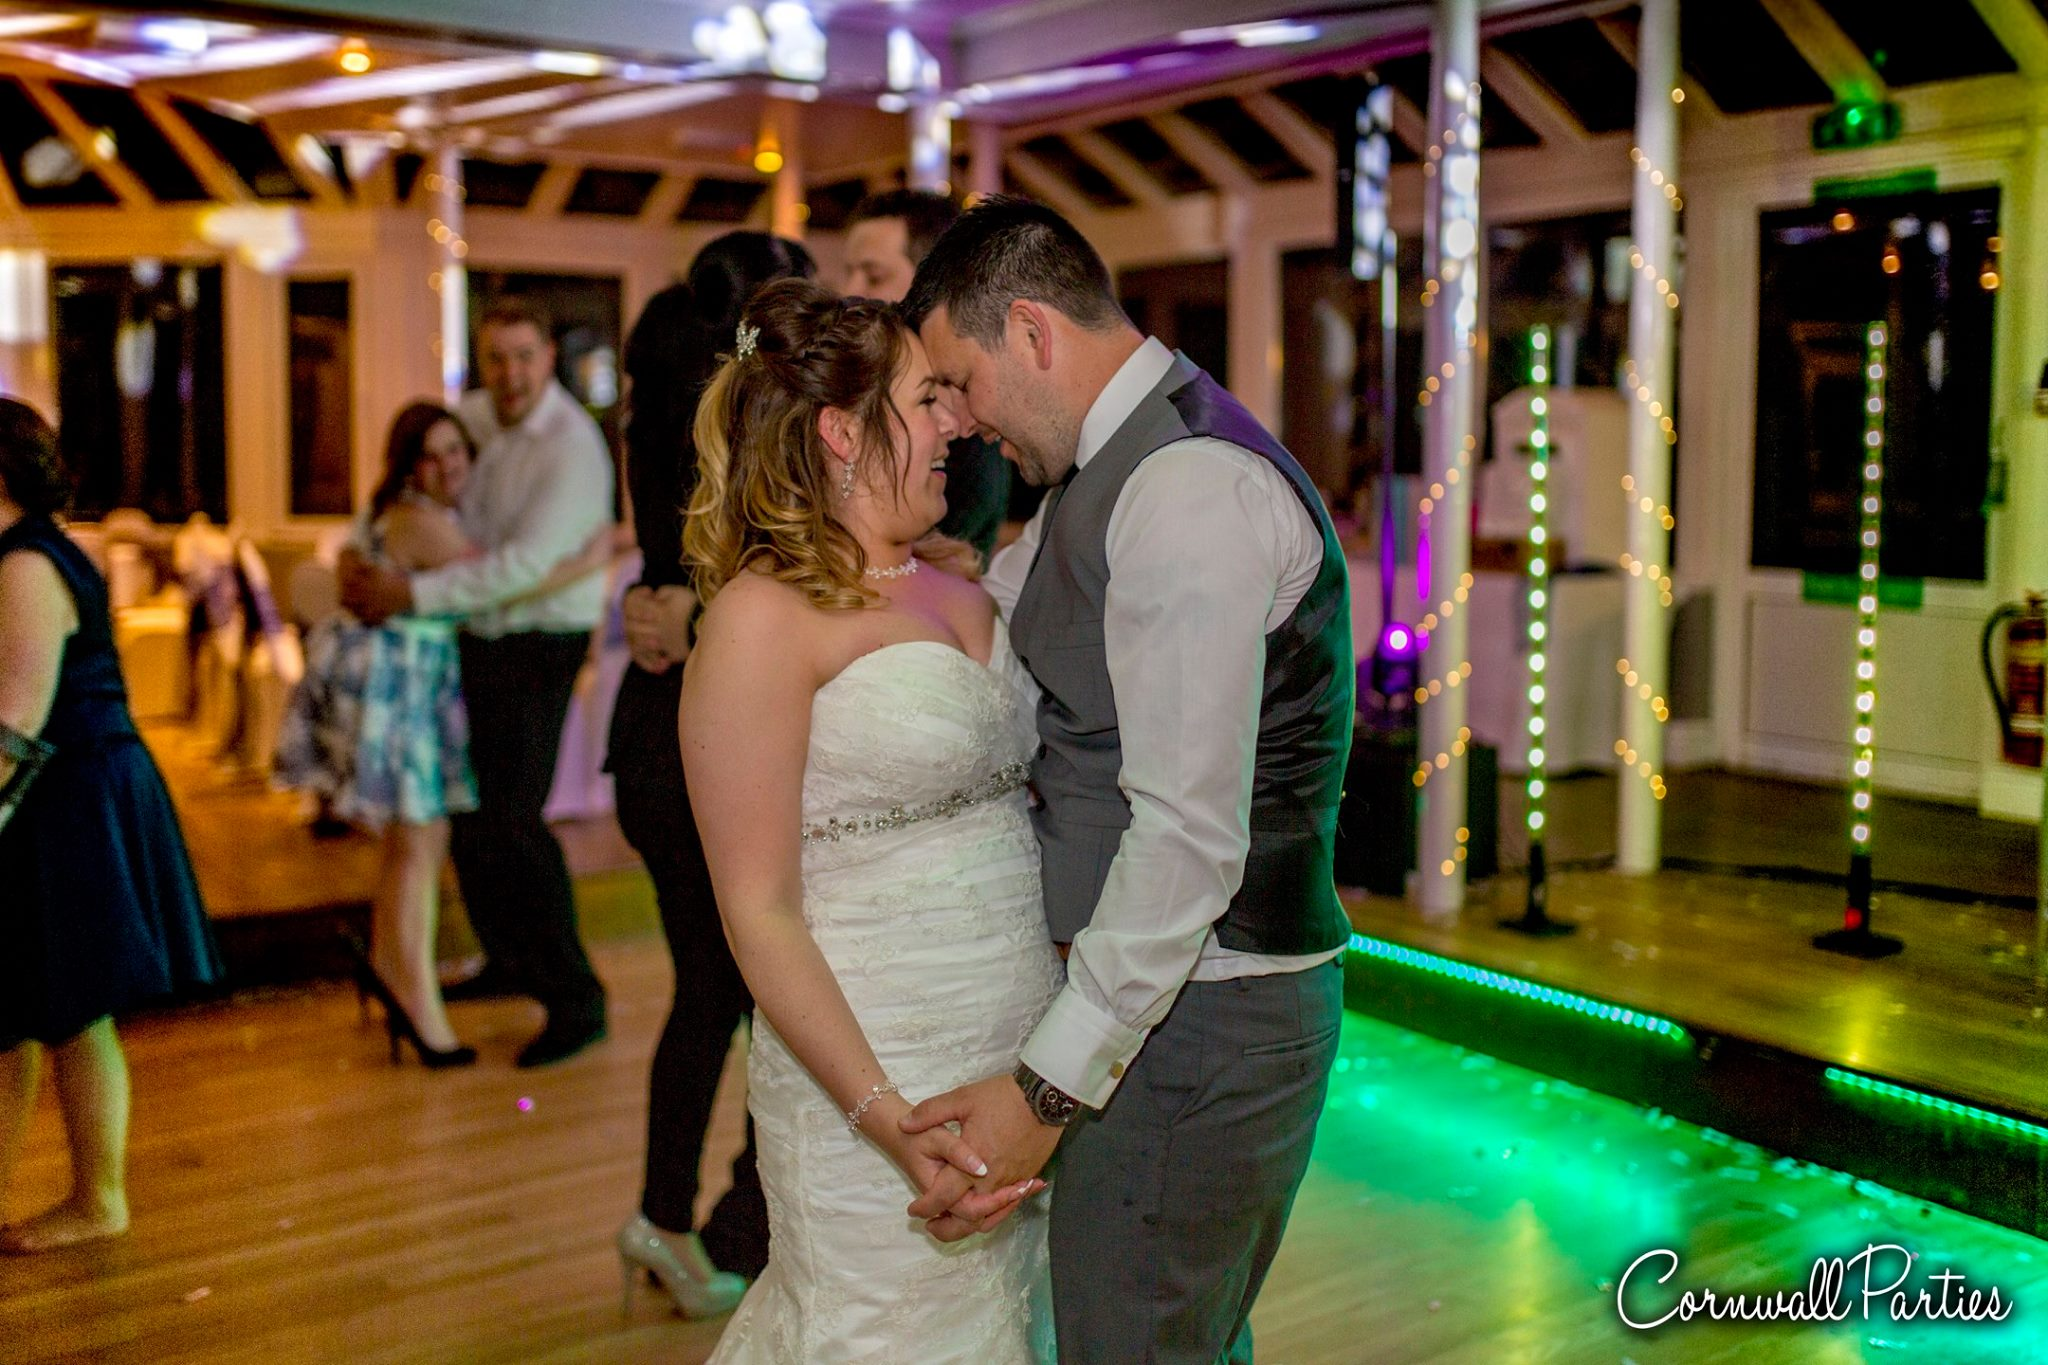 cornwall wedding disco dj photographer 23